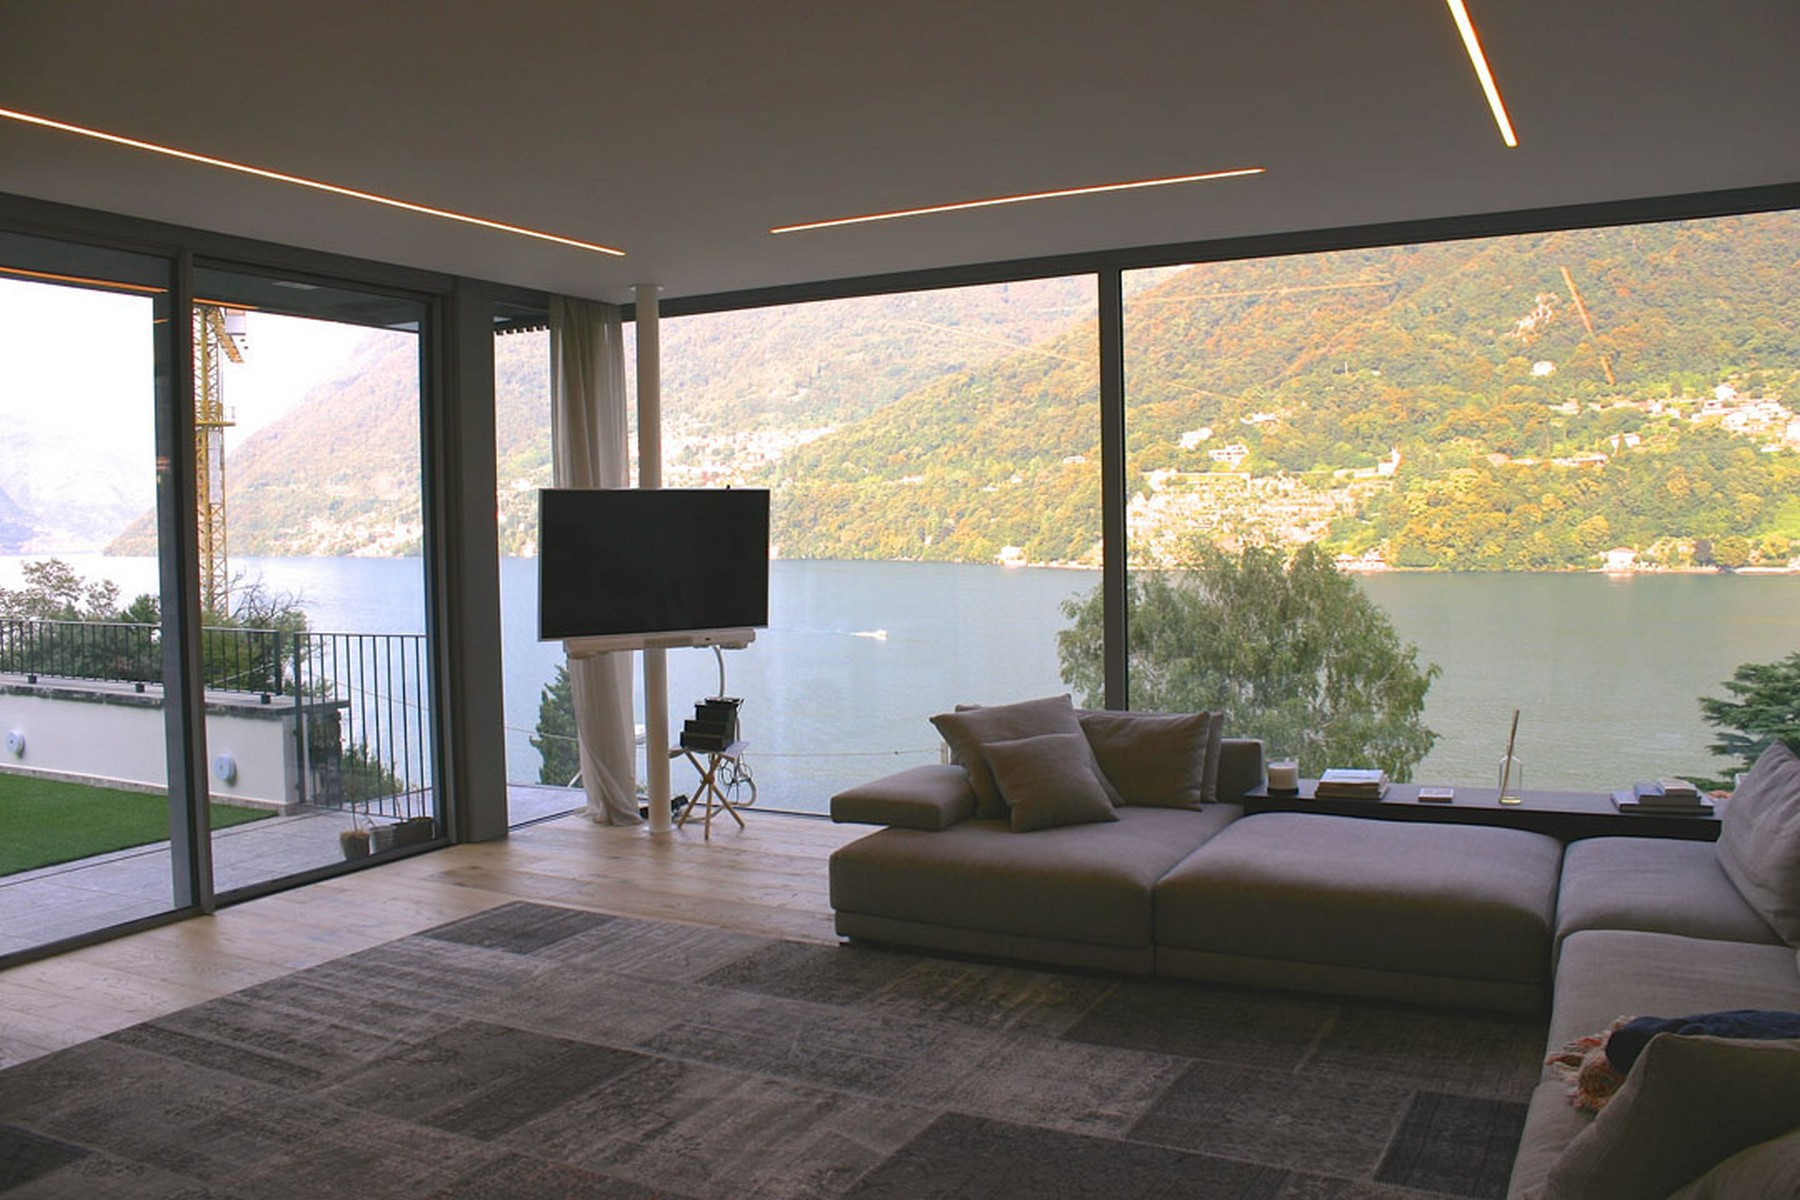 Additional photo for property listing at Prestigious newly built apartment Laglio Laglio, Como 22010 Italie